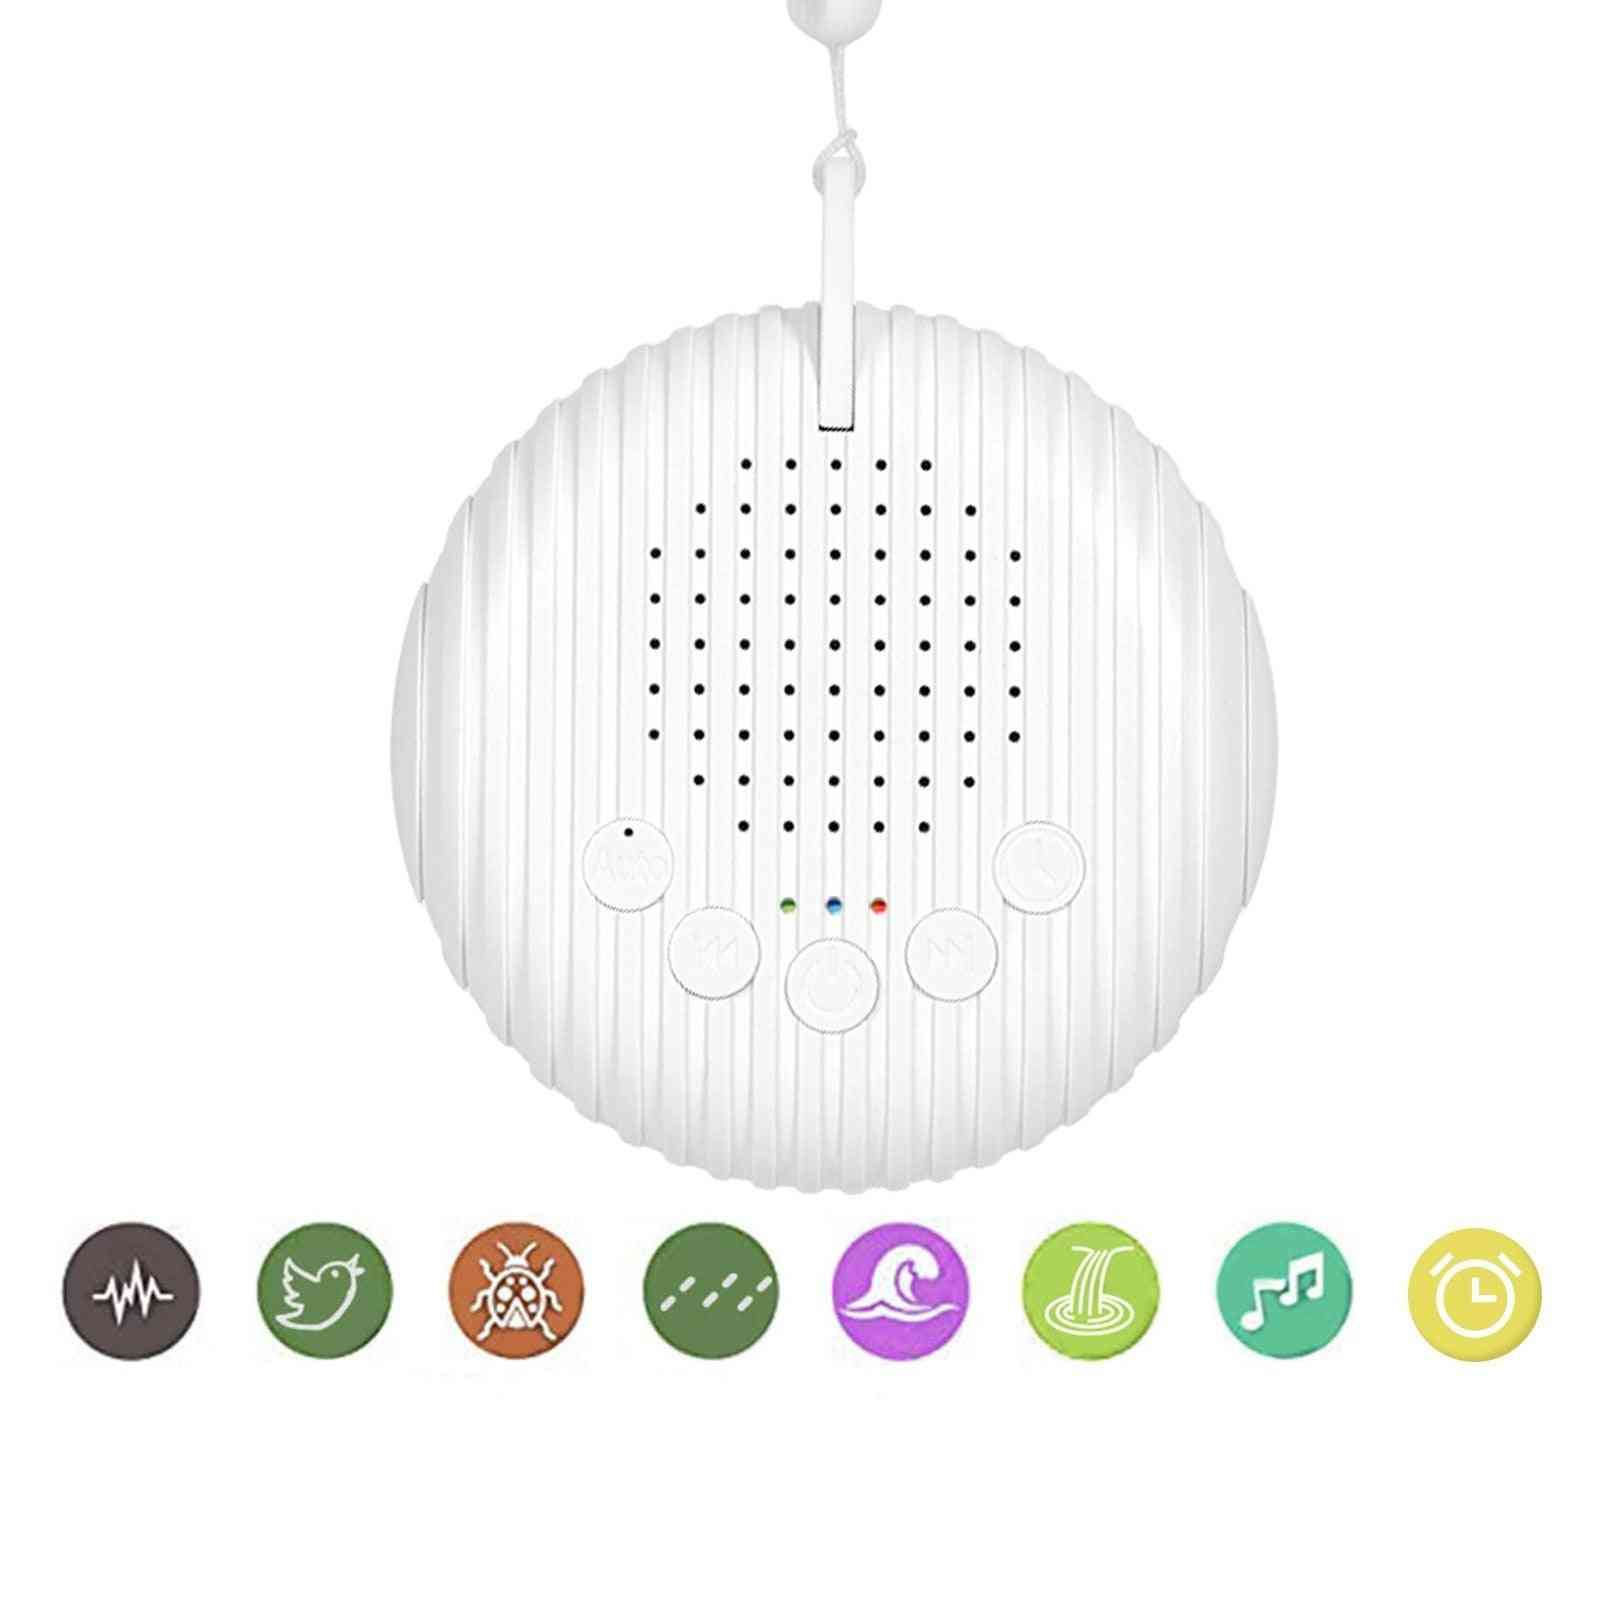 Relaxation Monitor For Baby (white)